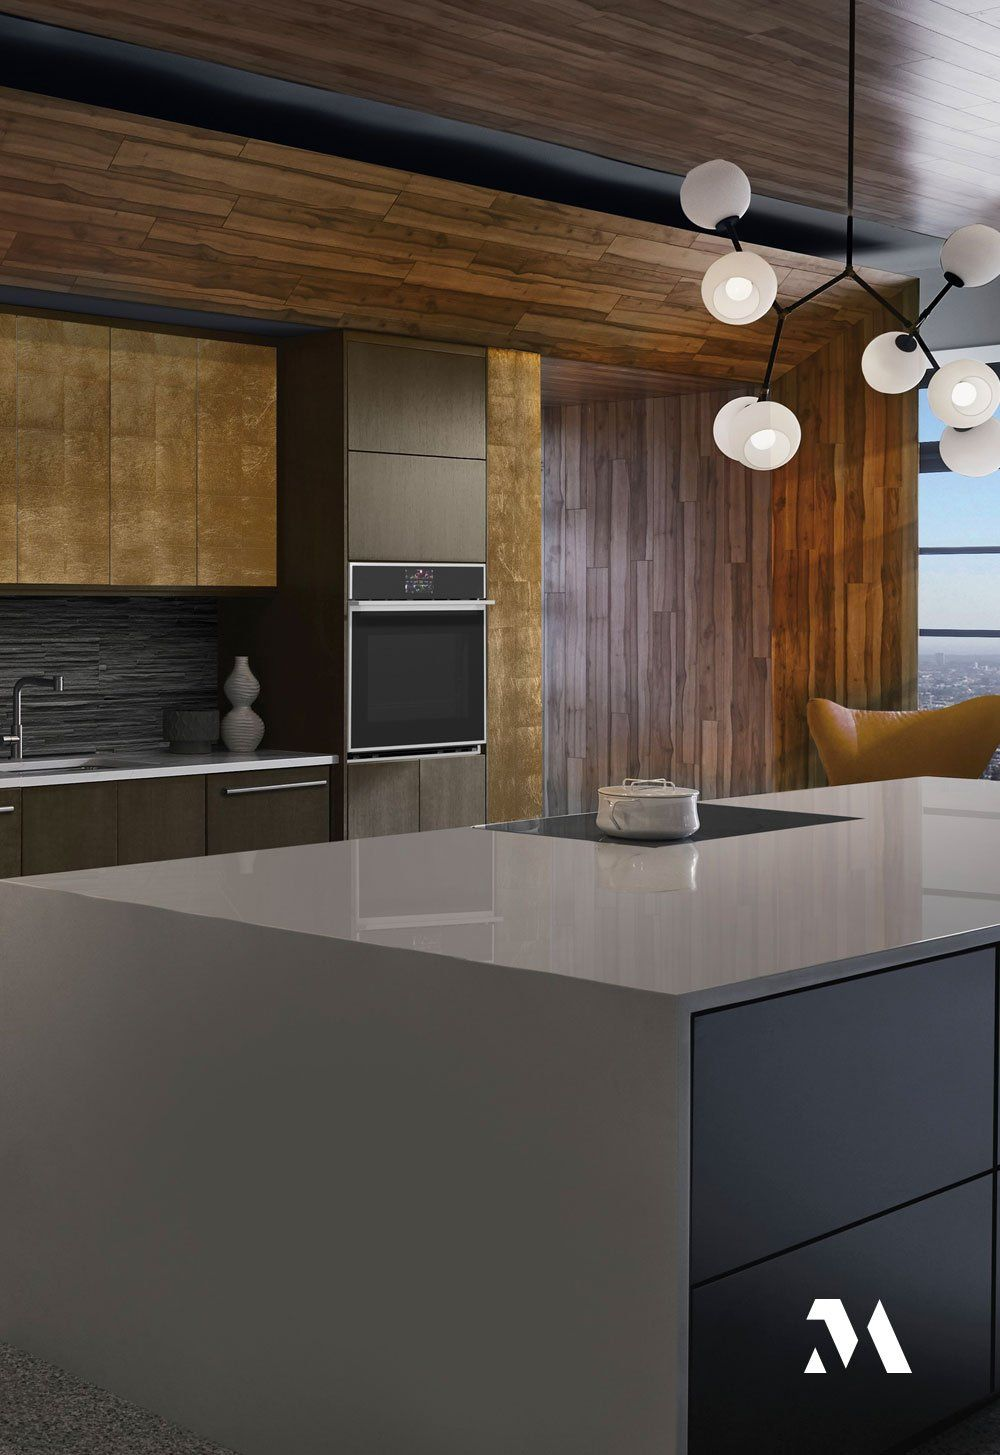 The Laurel Canyon Kitchen Reflects The Exacting Attention To Detail That Epitomizes The Monogram Bran In 2020 Professional Kitchen Appliances Terrazzo Flooring Kitchen